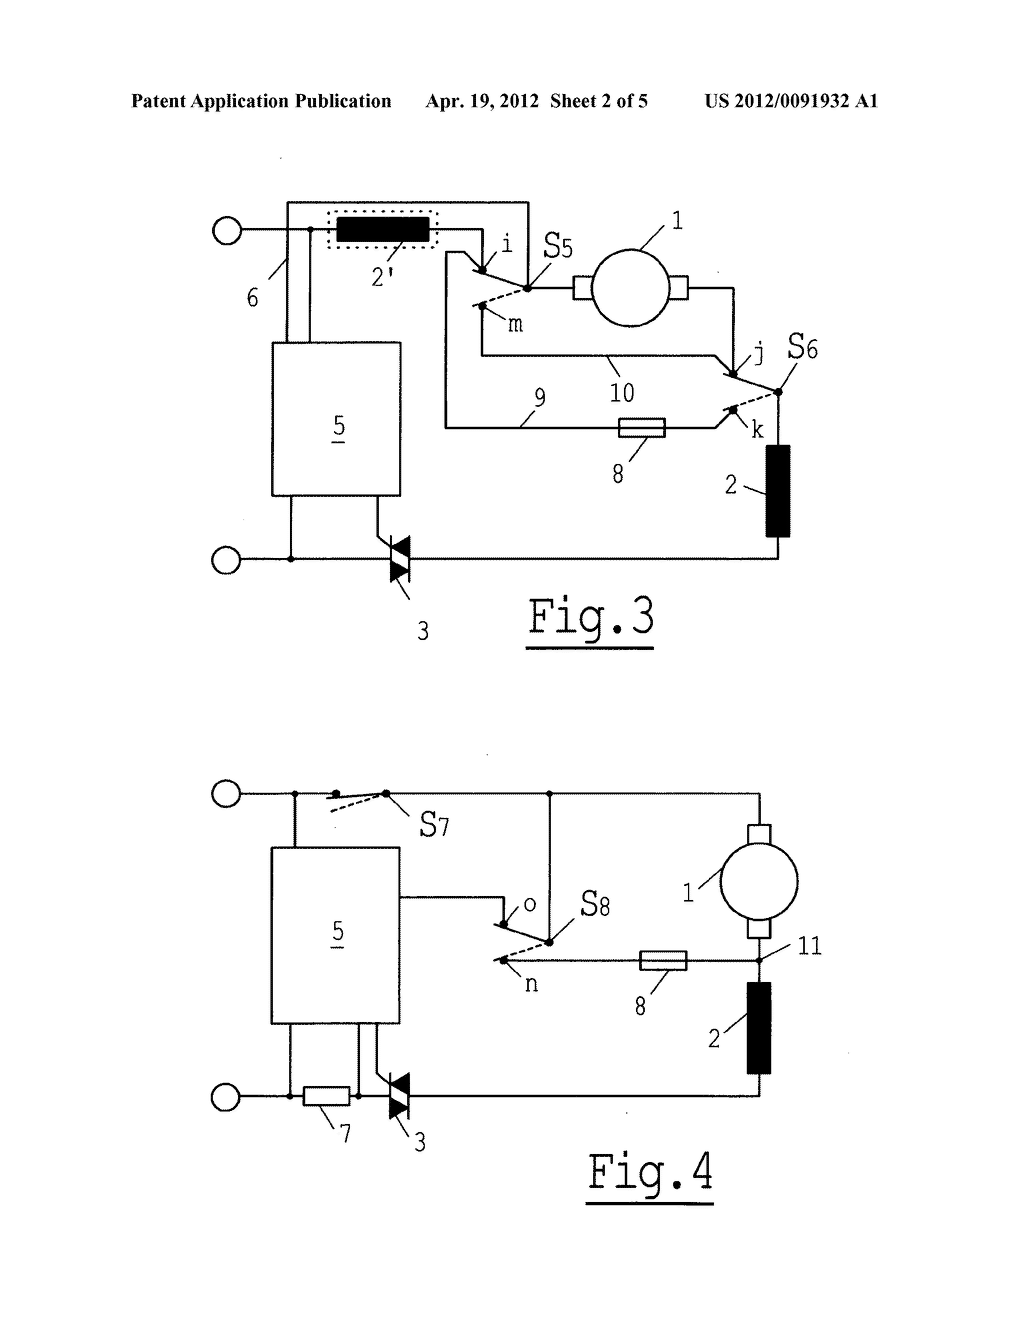 Universal Motor Schematic Wiring Library Jd 2510 Diagram Electrodynamic Braking Device For A And Image 03